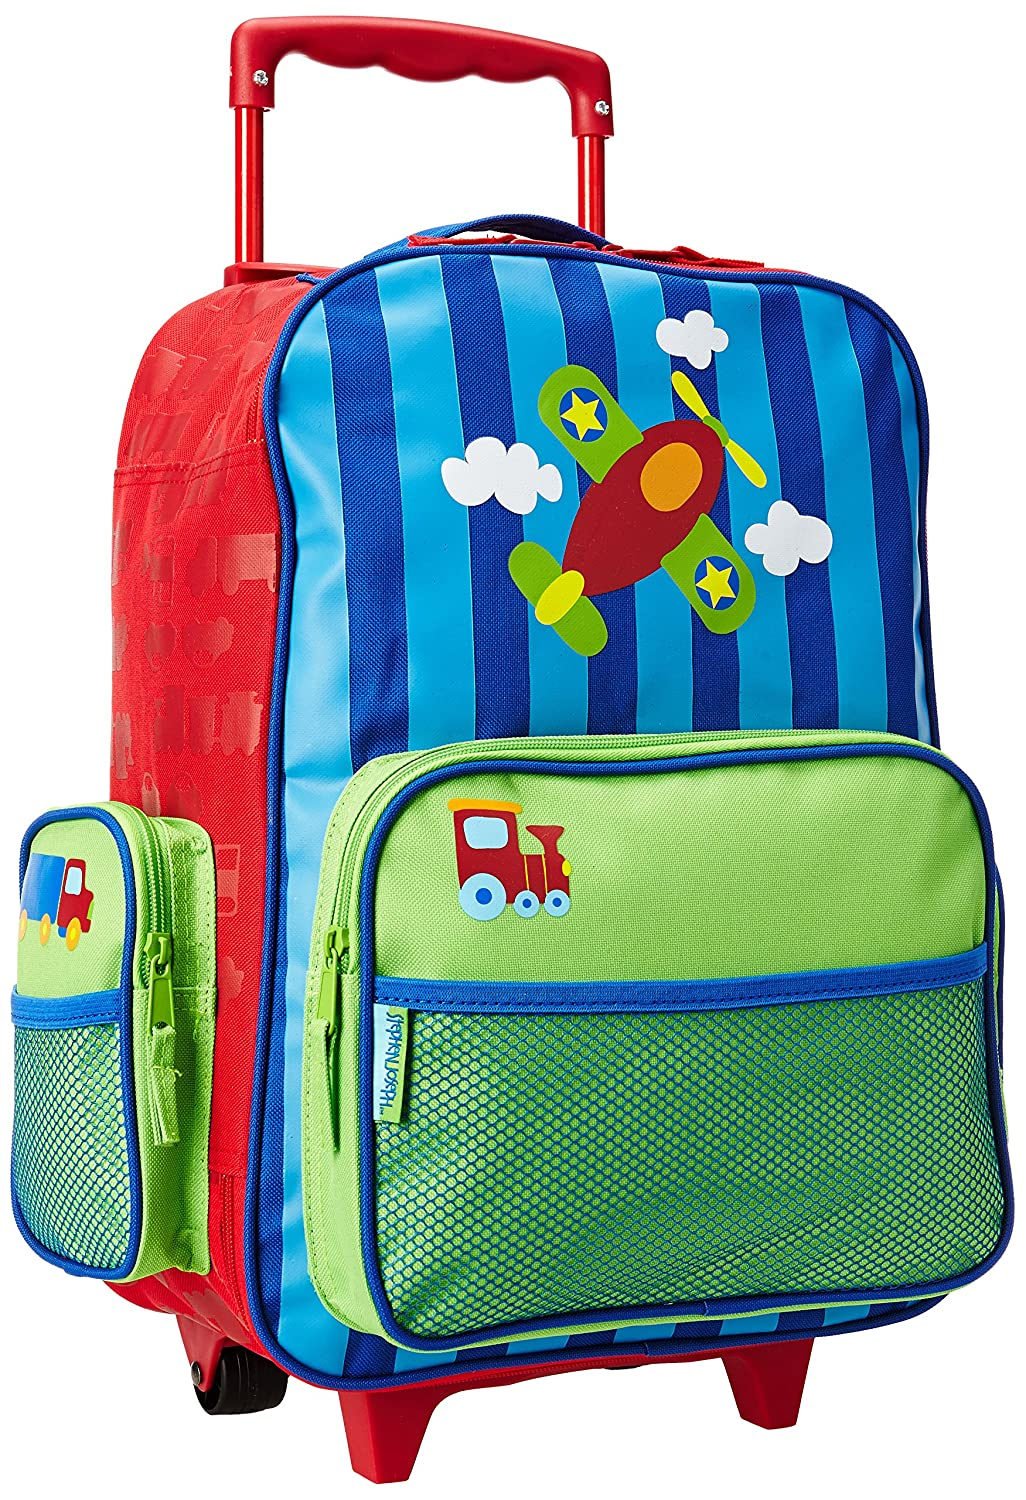 Stephen Joseph Little Boy's Classic Rolling Luggage, Accessory, Dino, No Size B-SIDE PLAYERS SJ-8001-59A